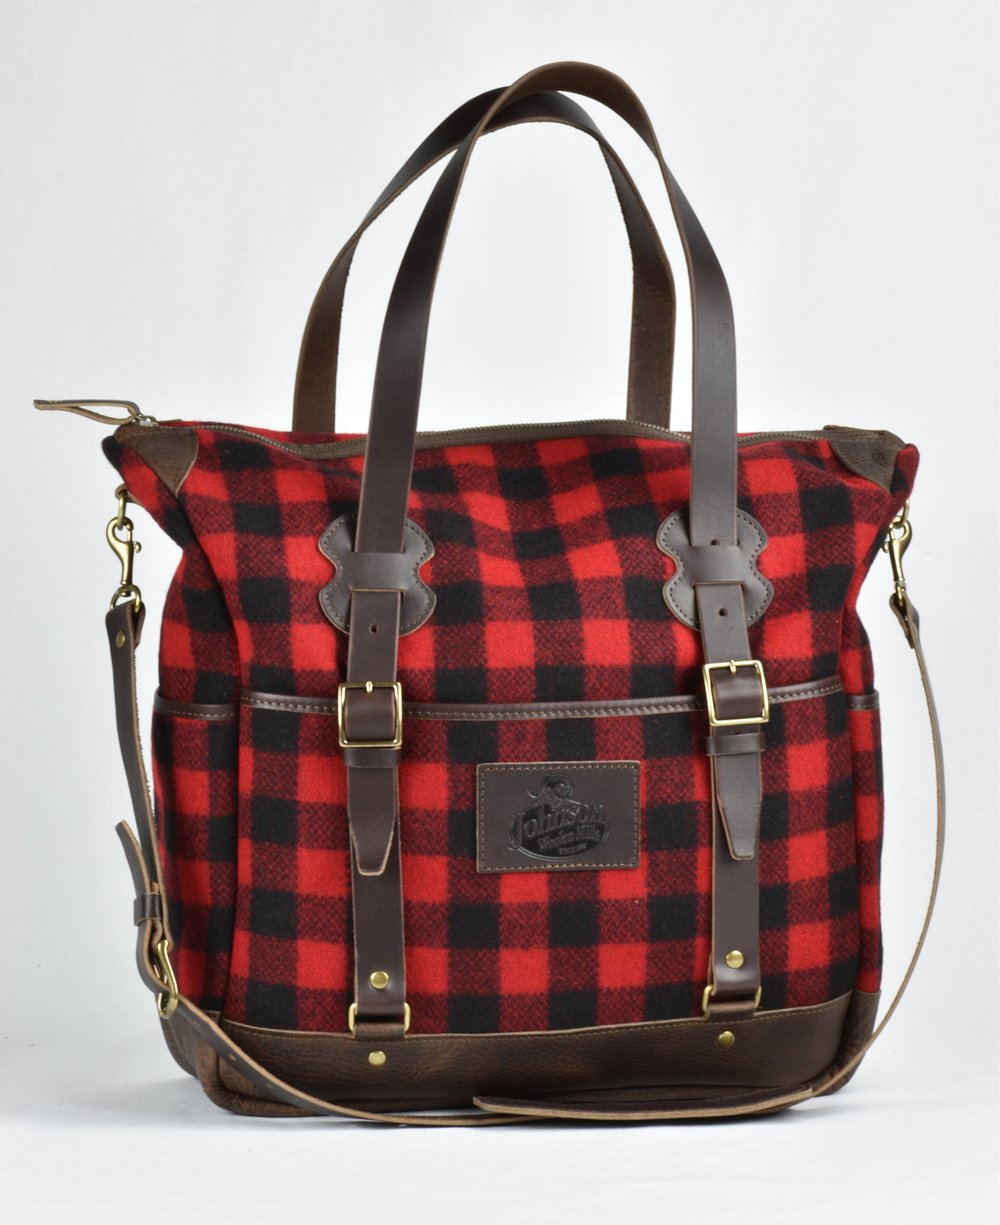 Vermonter Bag - Special Edition Johnson Woolen Mills Collaboration